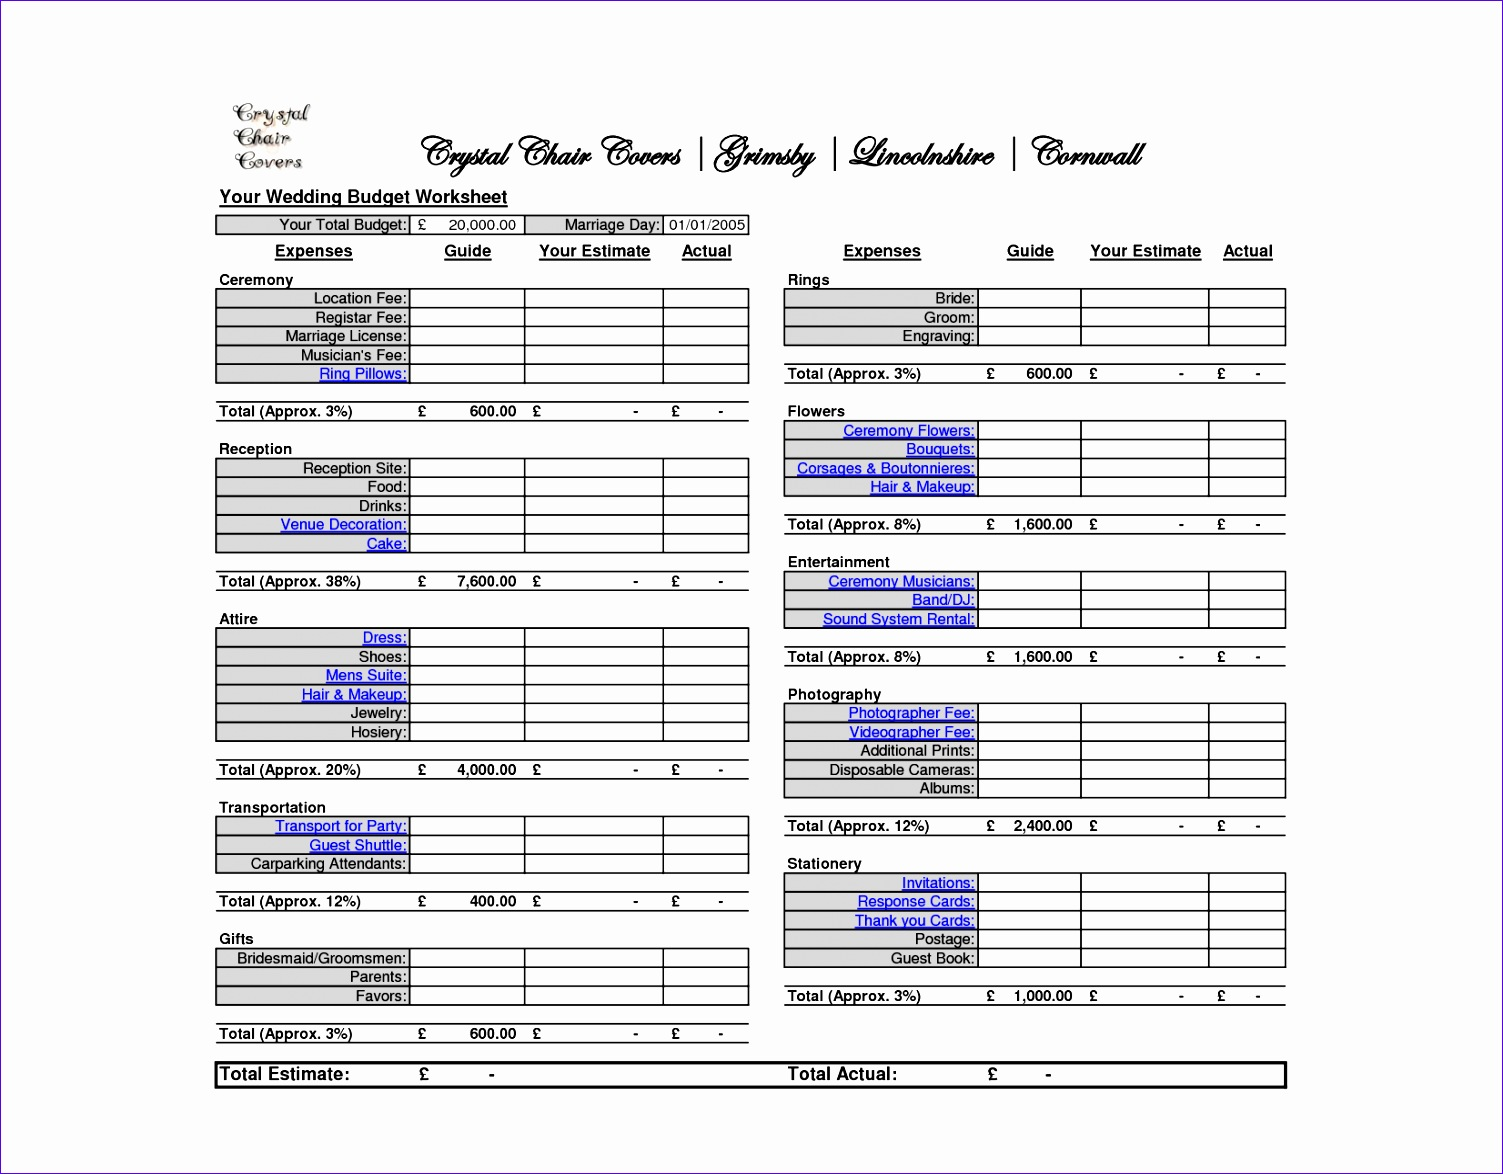 Timeline Spreadsheet Template Excel Ehwgv Luxury Wedding Bud Planner Worksheet Davezan 16521277